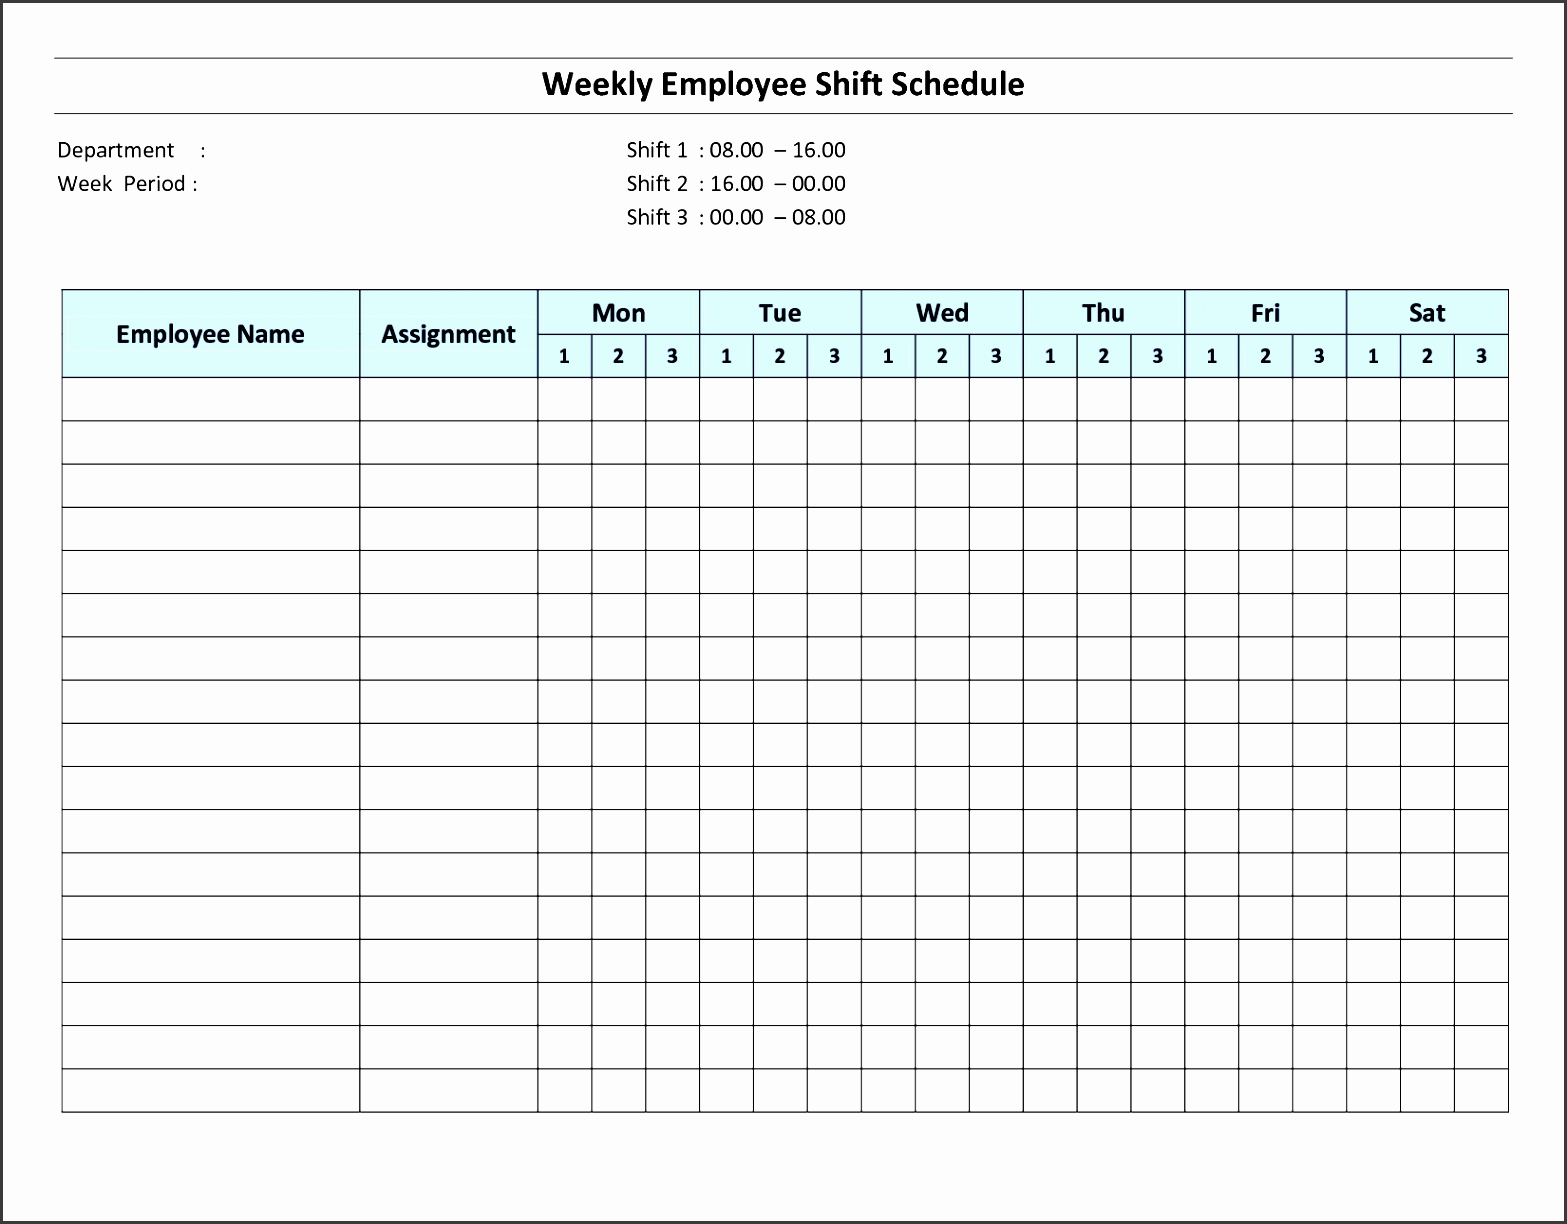 Monthly Shift Schedule Template Inspirational 8 Daily Schedule Template for Employees Sampletemplatess